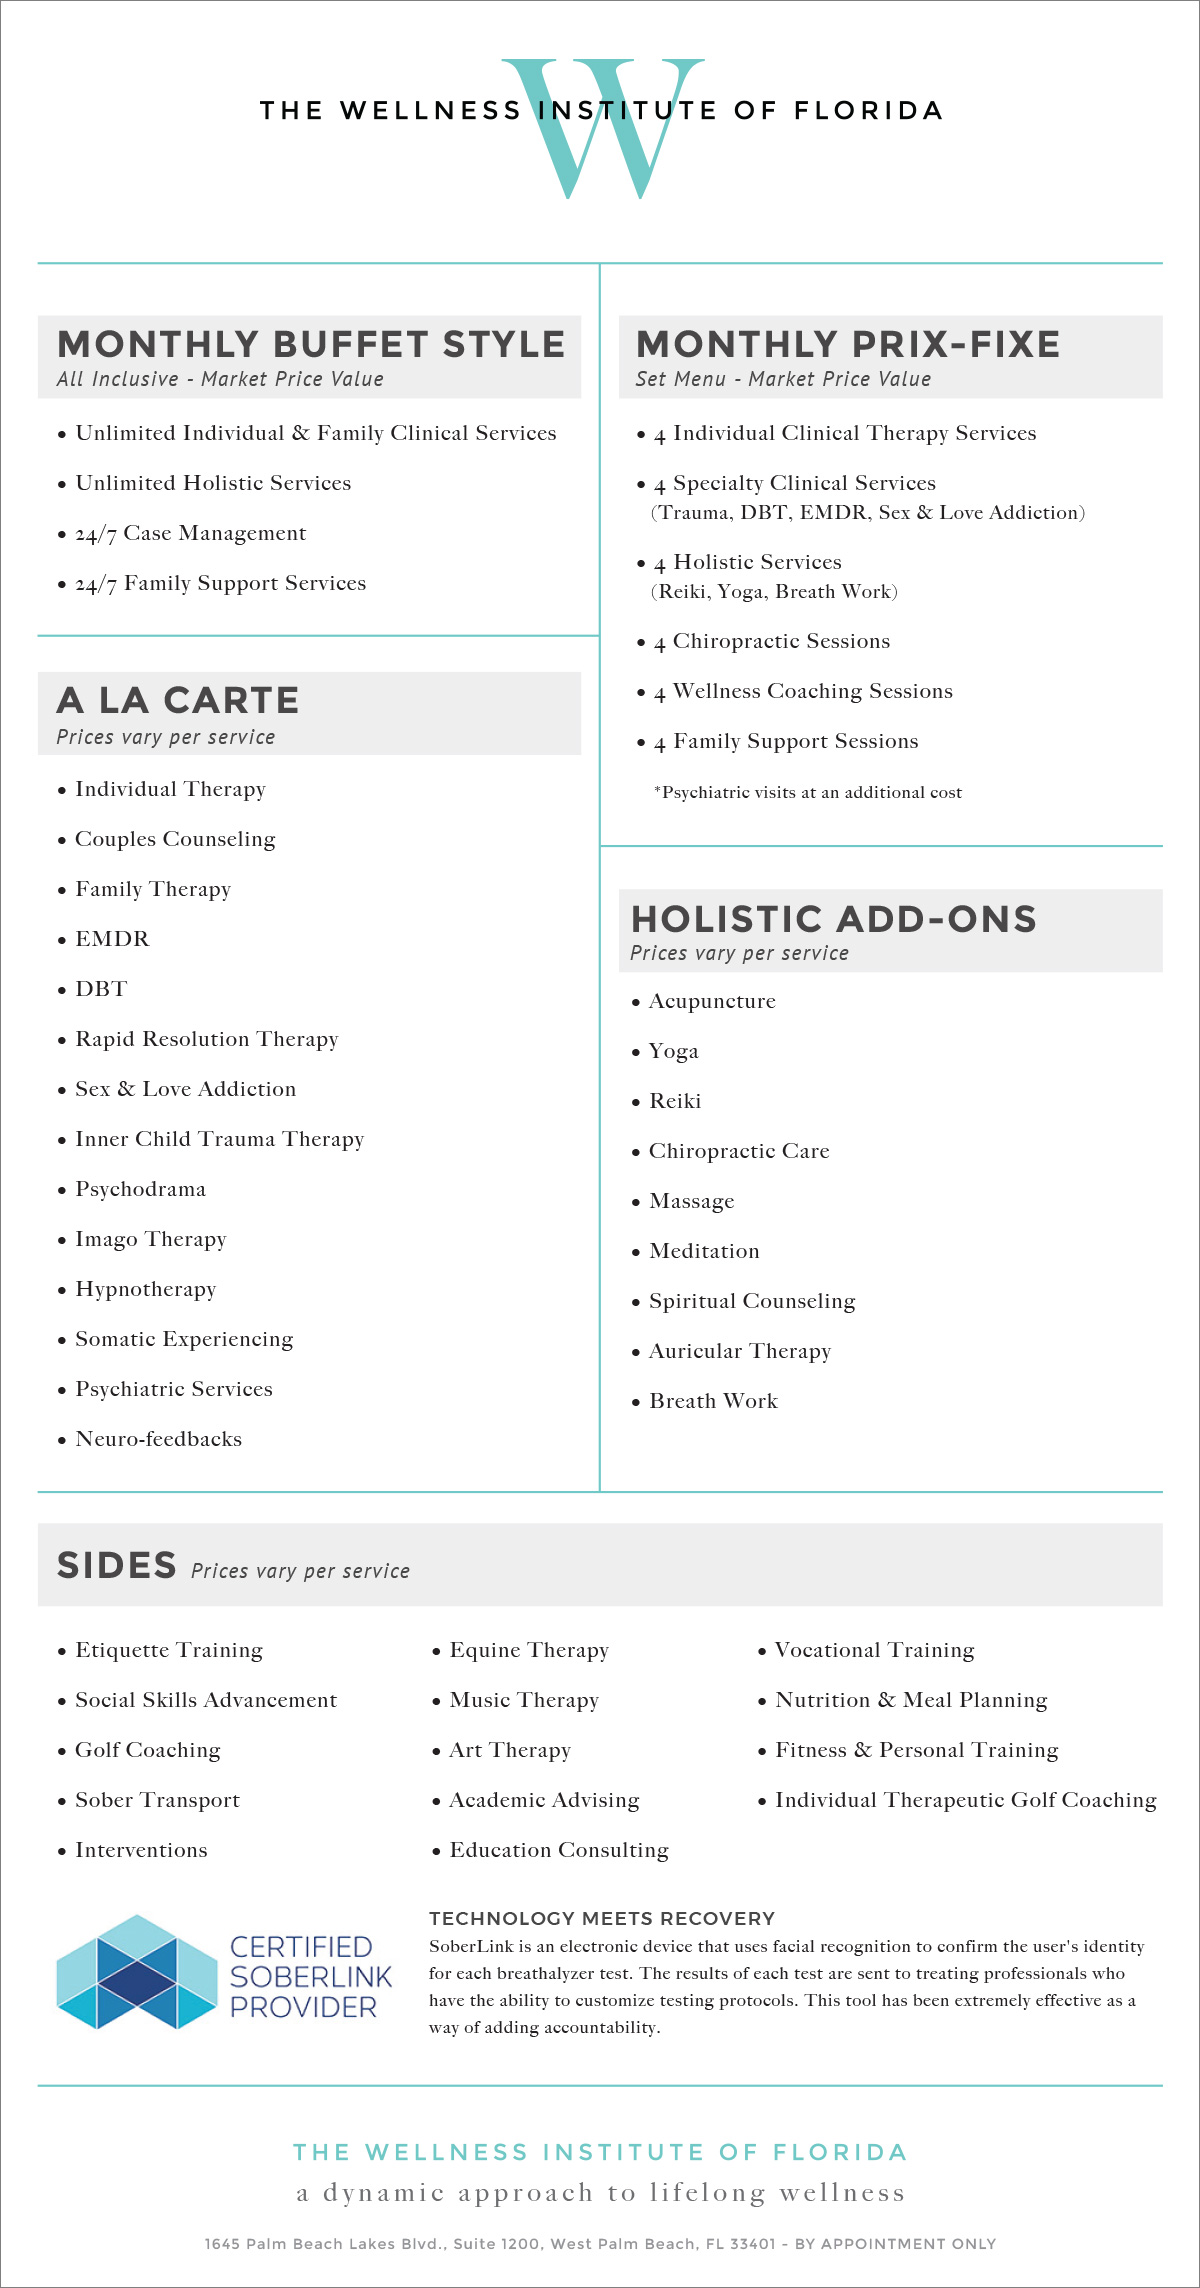 TheWellnessInstituteFL-MENU_border-updated.jpg